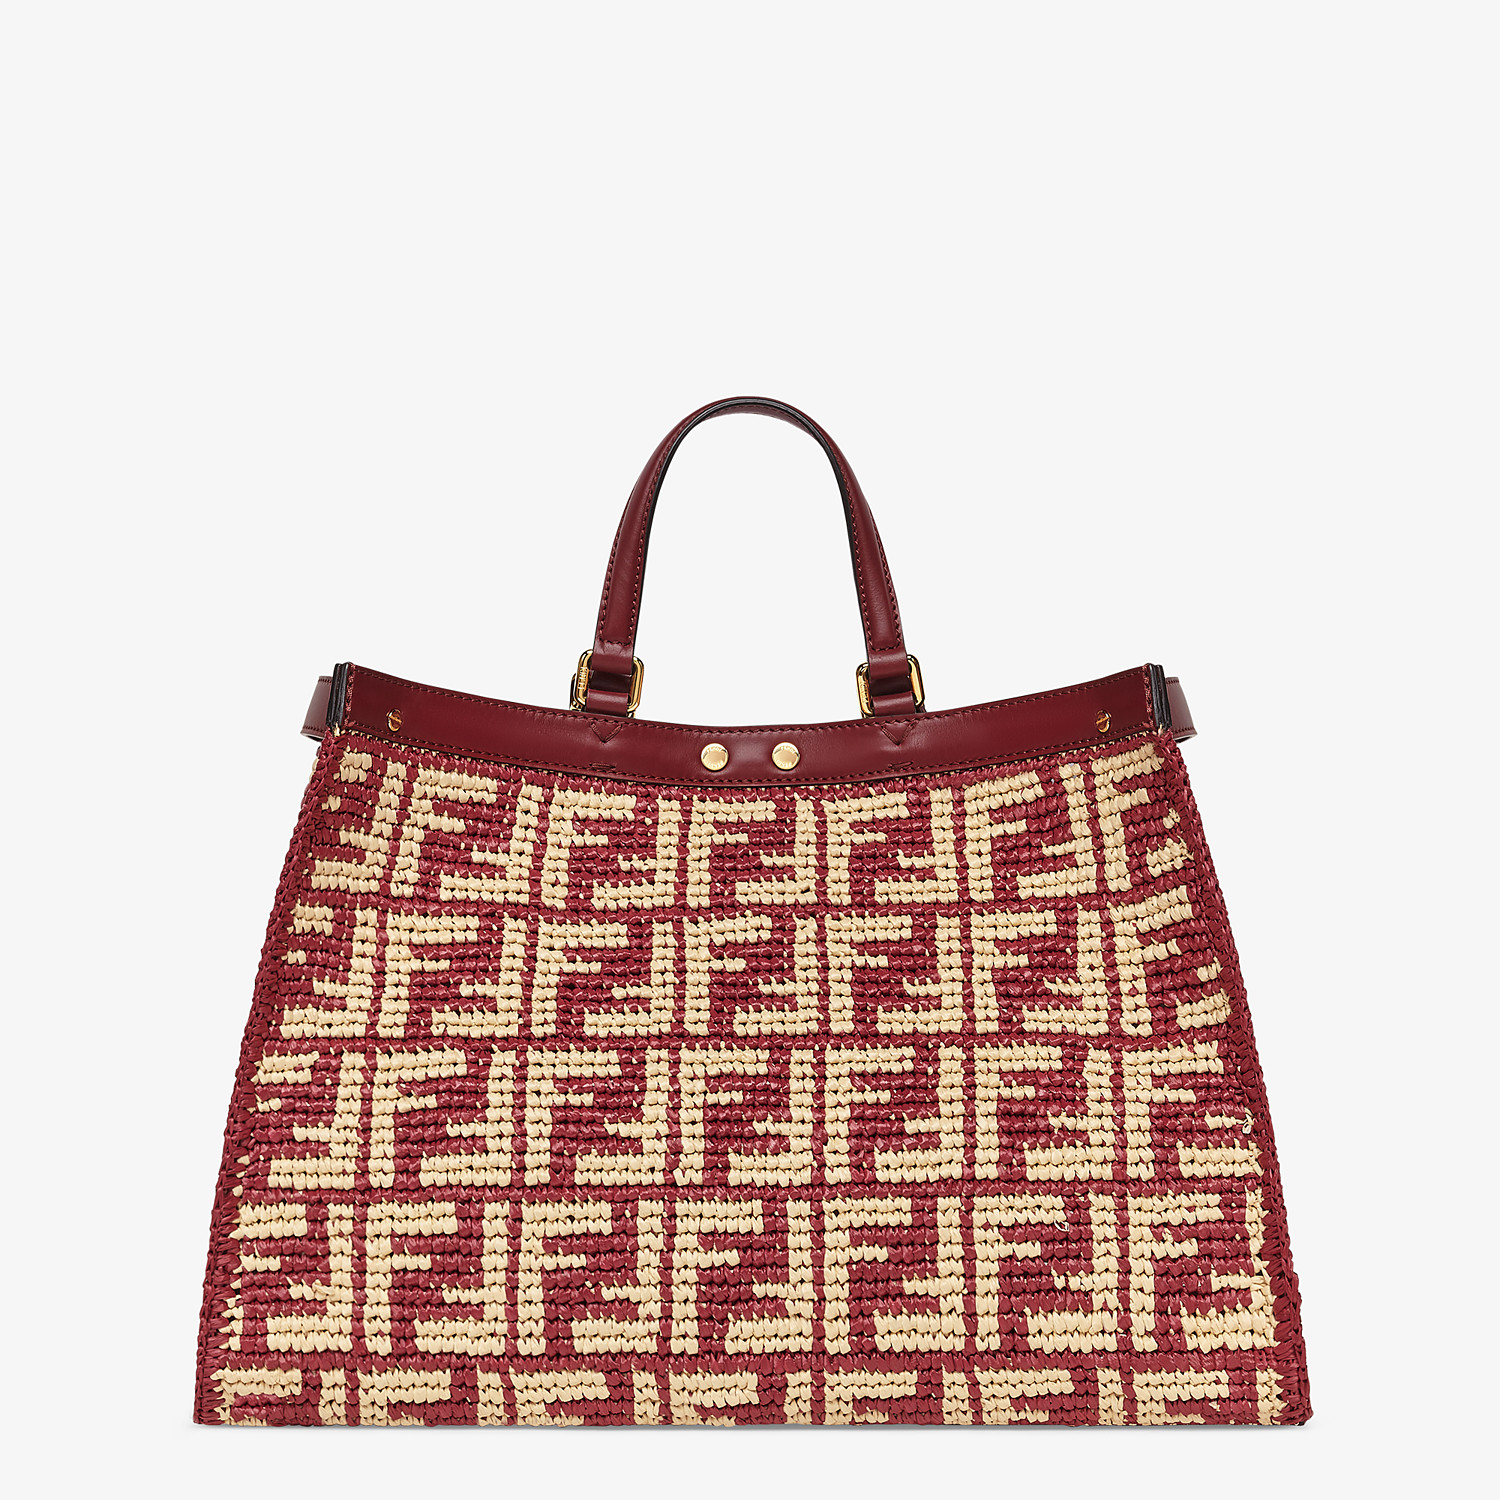 FENDI PEEKABOO X-TOTE - Burgundy FF raffia bag - view 4 detail